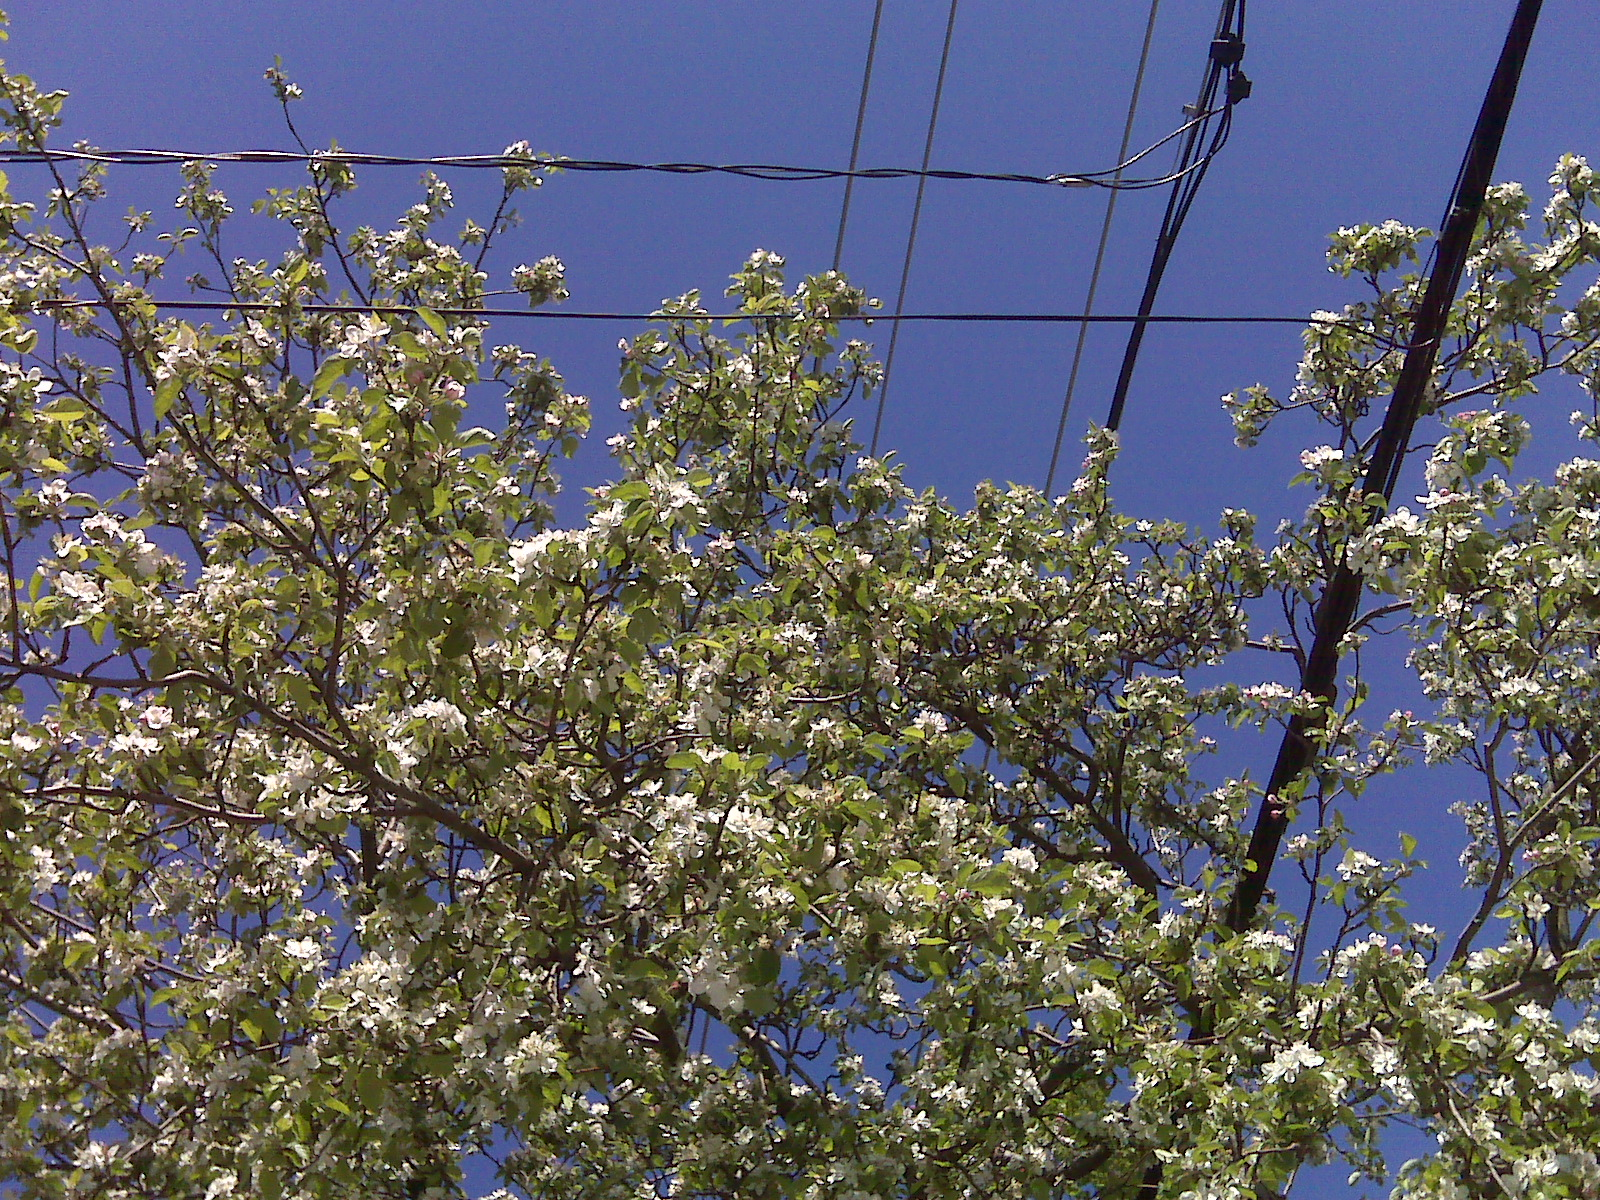 blossom and wires